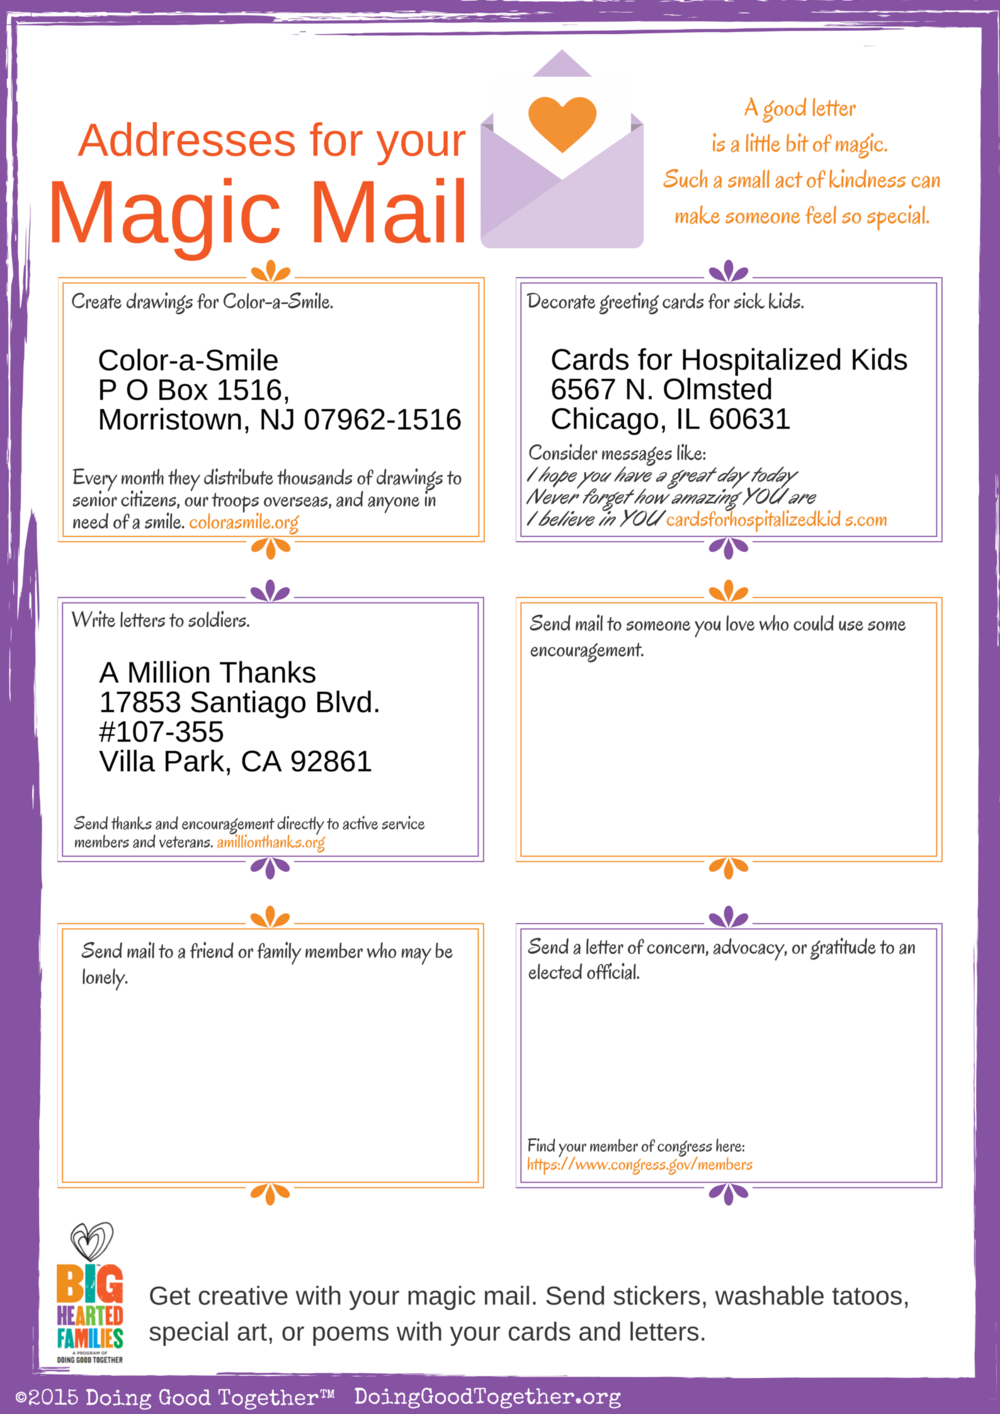 Magic mail image.png